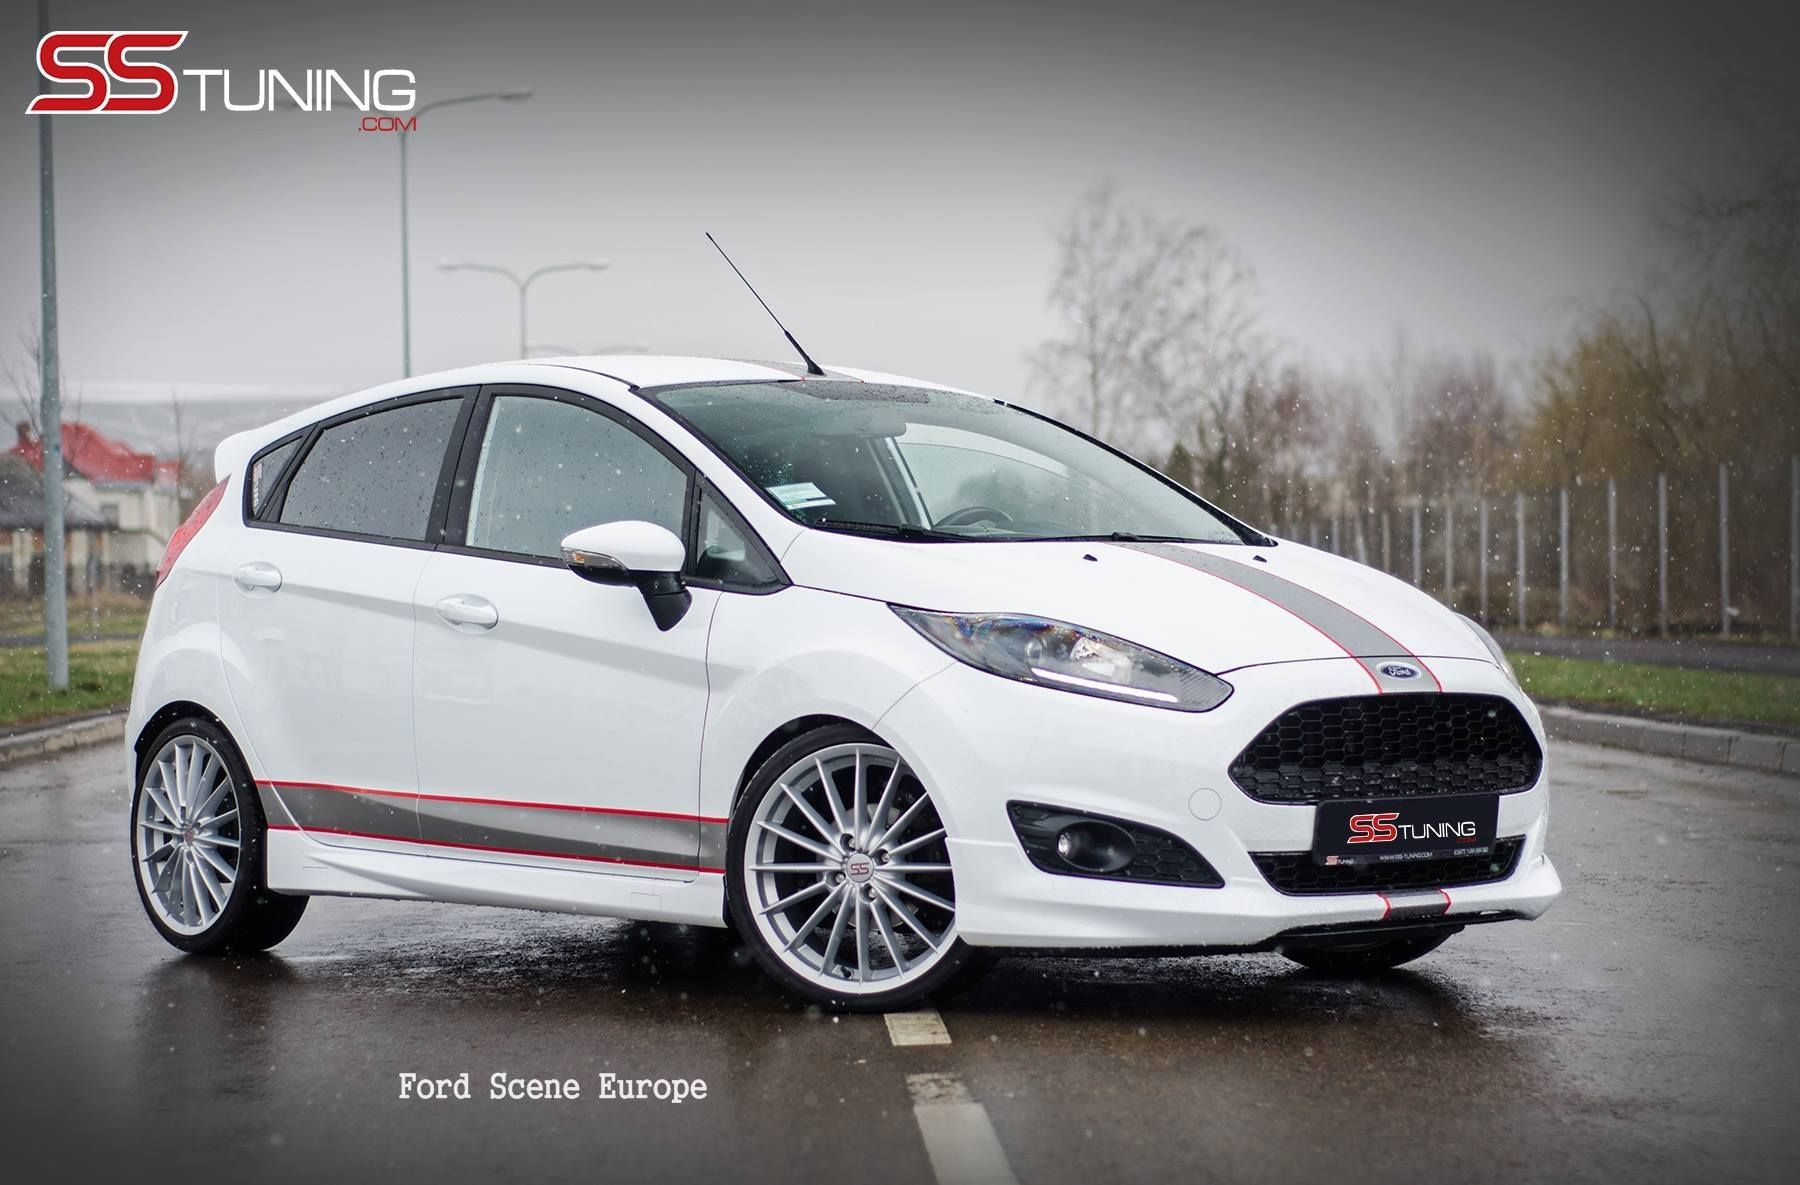 ford fiesta ss tuning white red and black all ford models pinterest ford ford models and cars. Black Bedroom Furniture Sets. Home Design Ideas